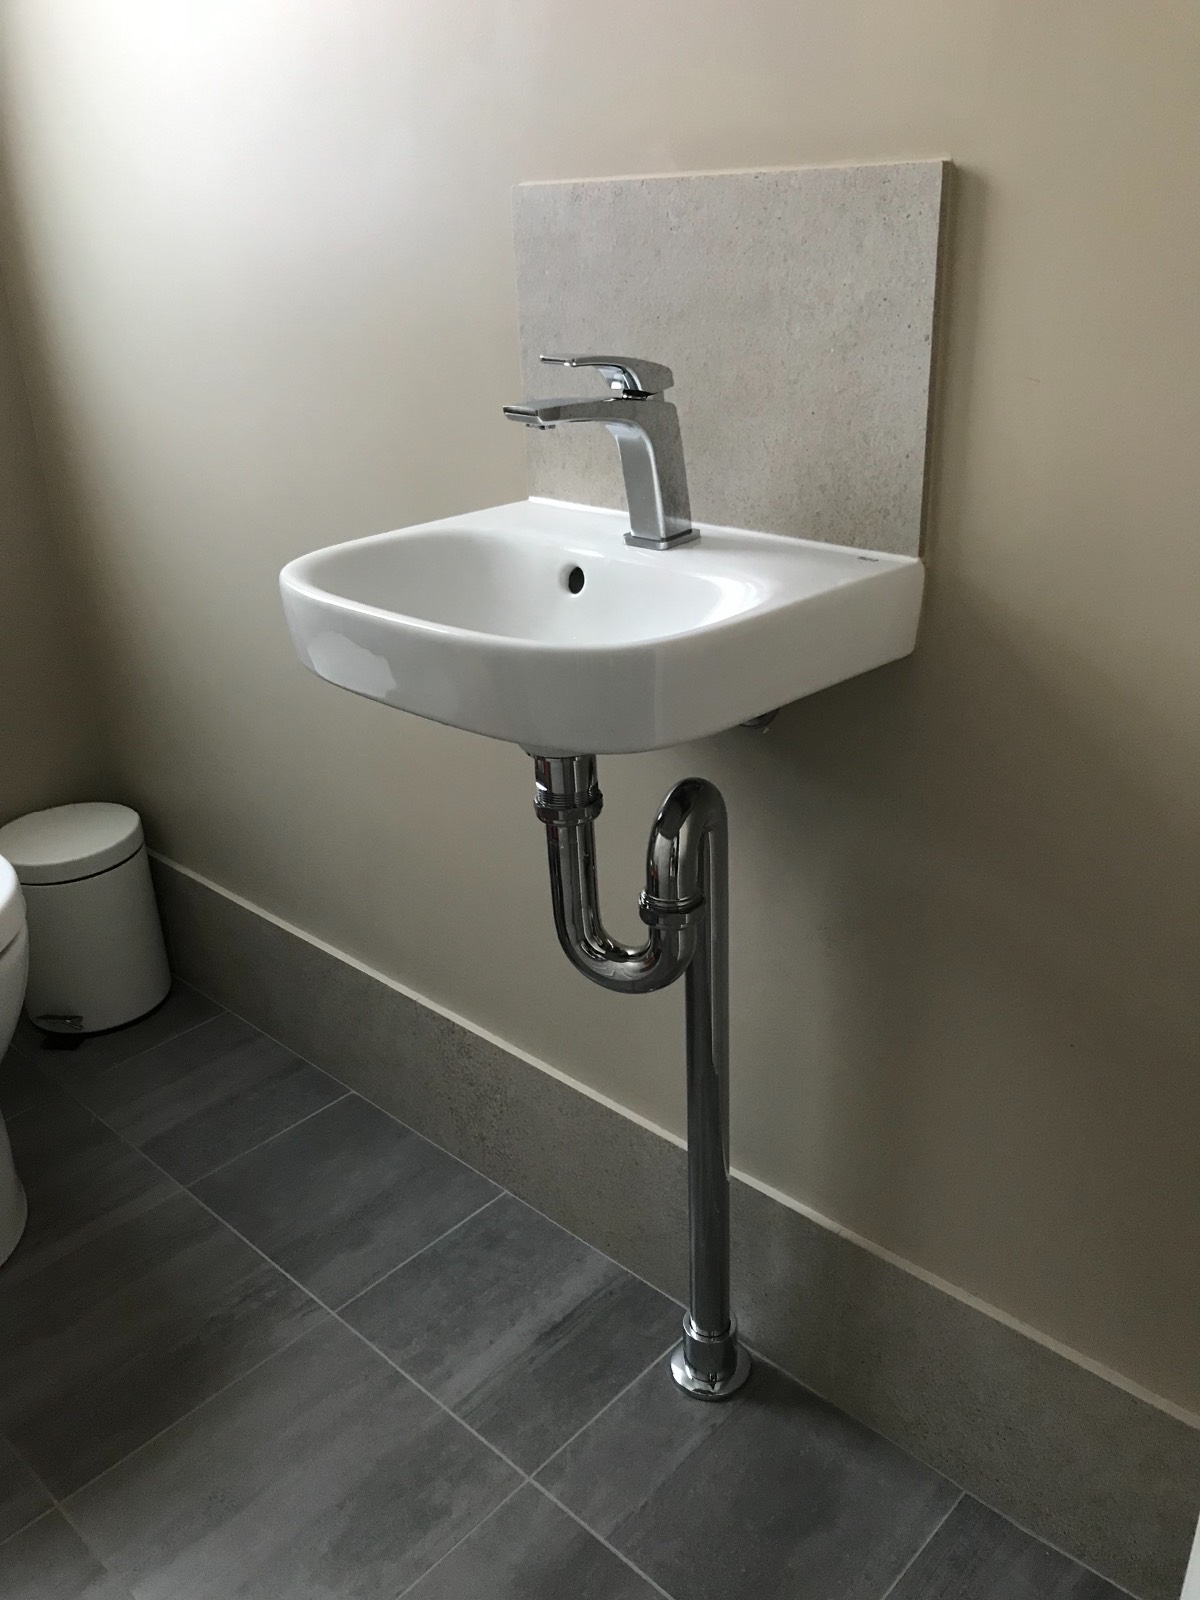 Sink in seperate toilet or combine with main bathroom?